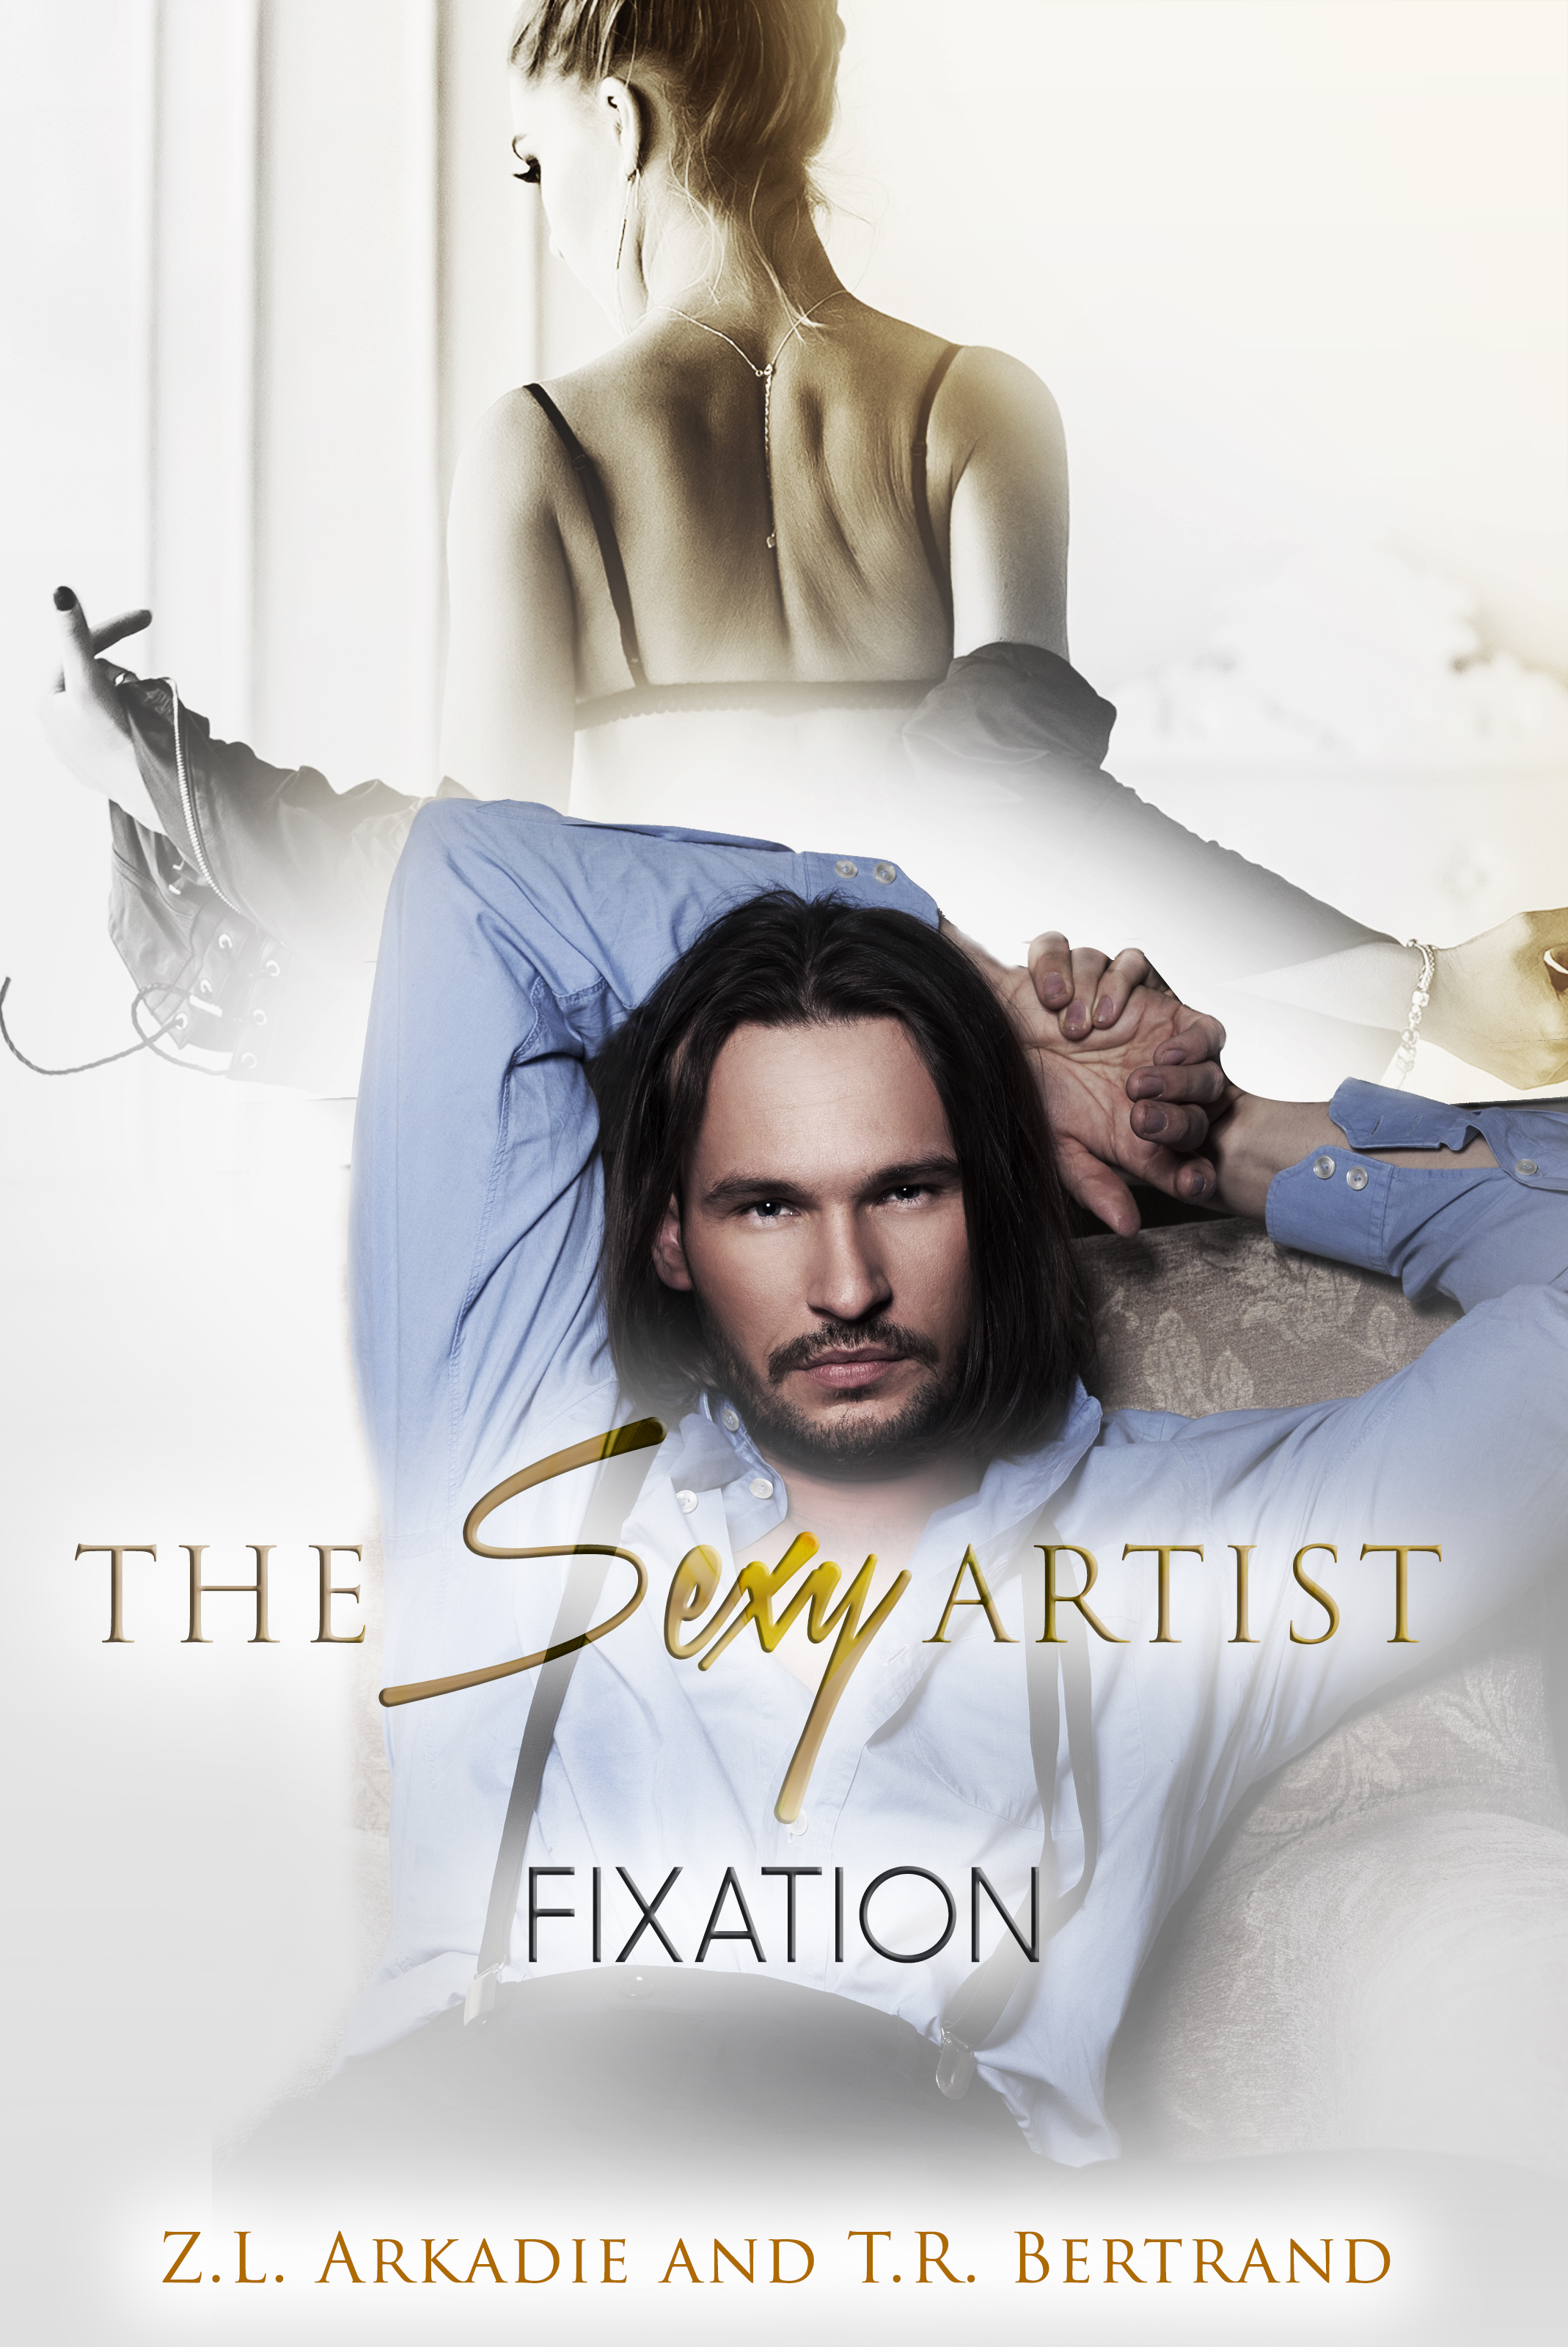 The Sexy Artist by ZL Arkadie and TR Bertrand